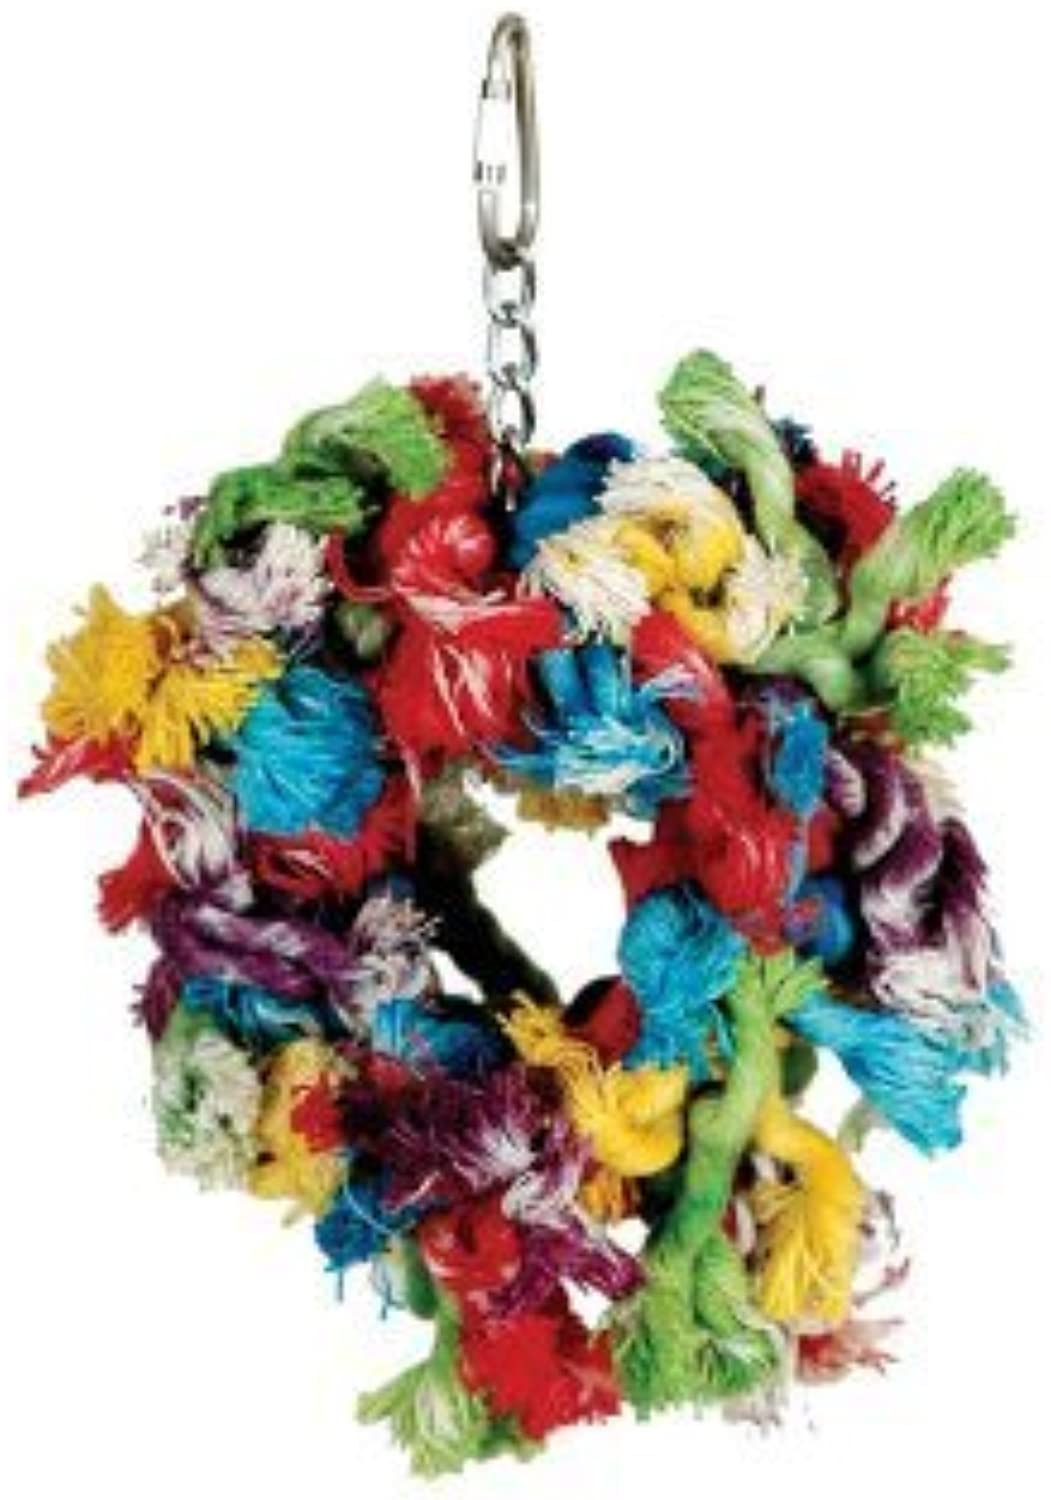 Paradise Toys Small Cotton Preening Ring, 5Inch W by 7Inch L by Caitec Corp